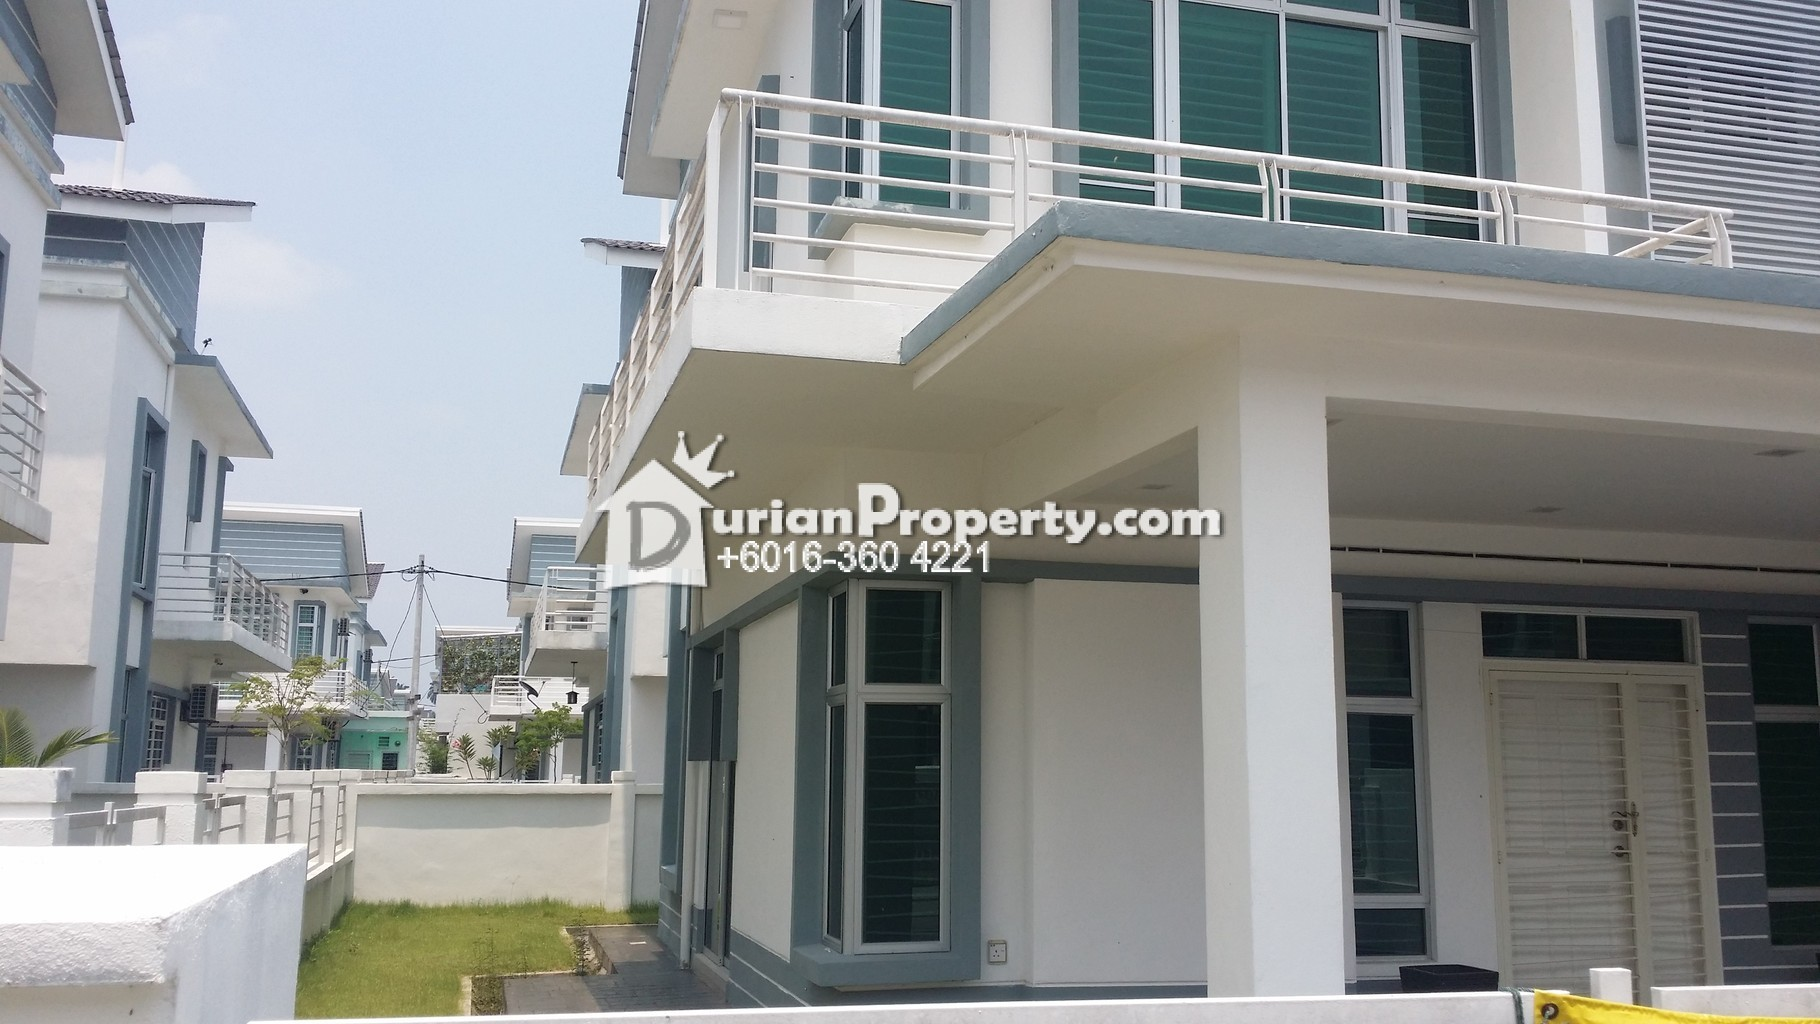 Buy Auction Property Malaysia